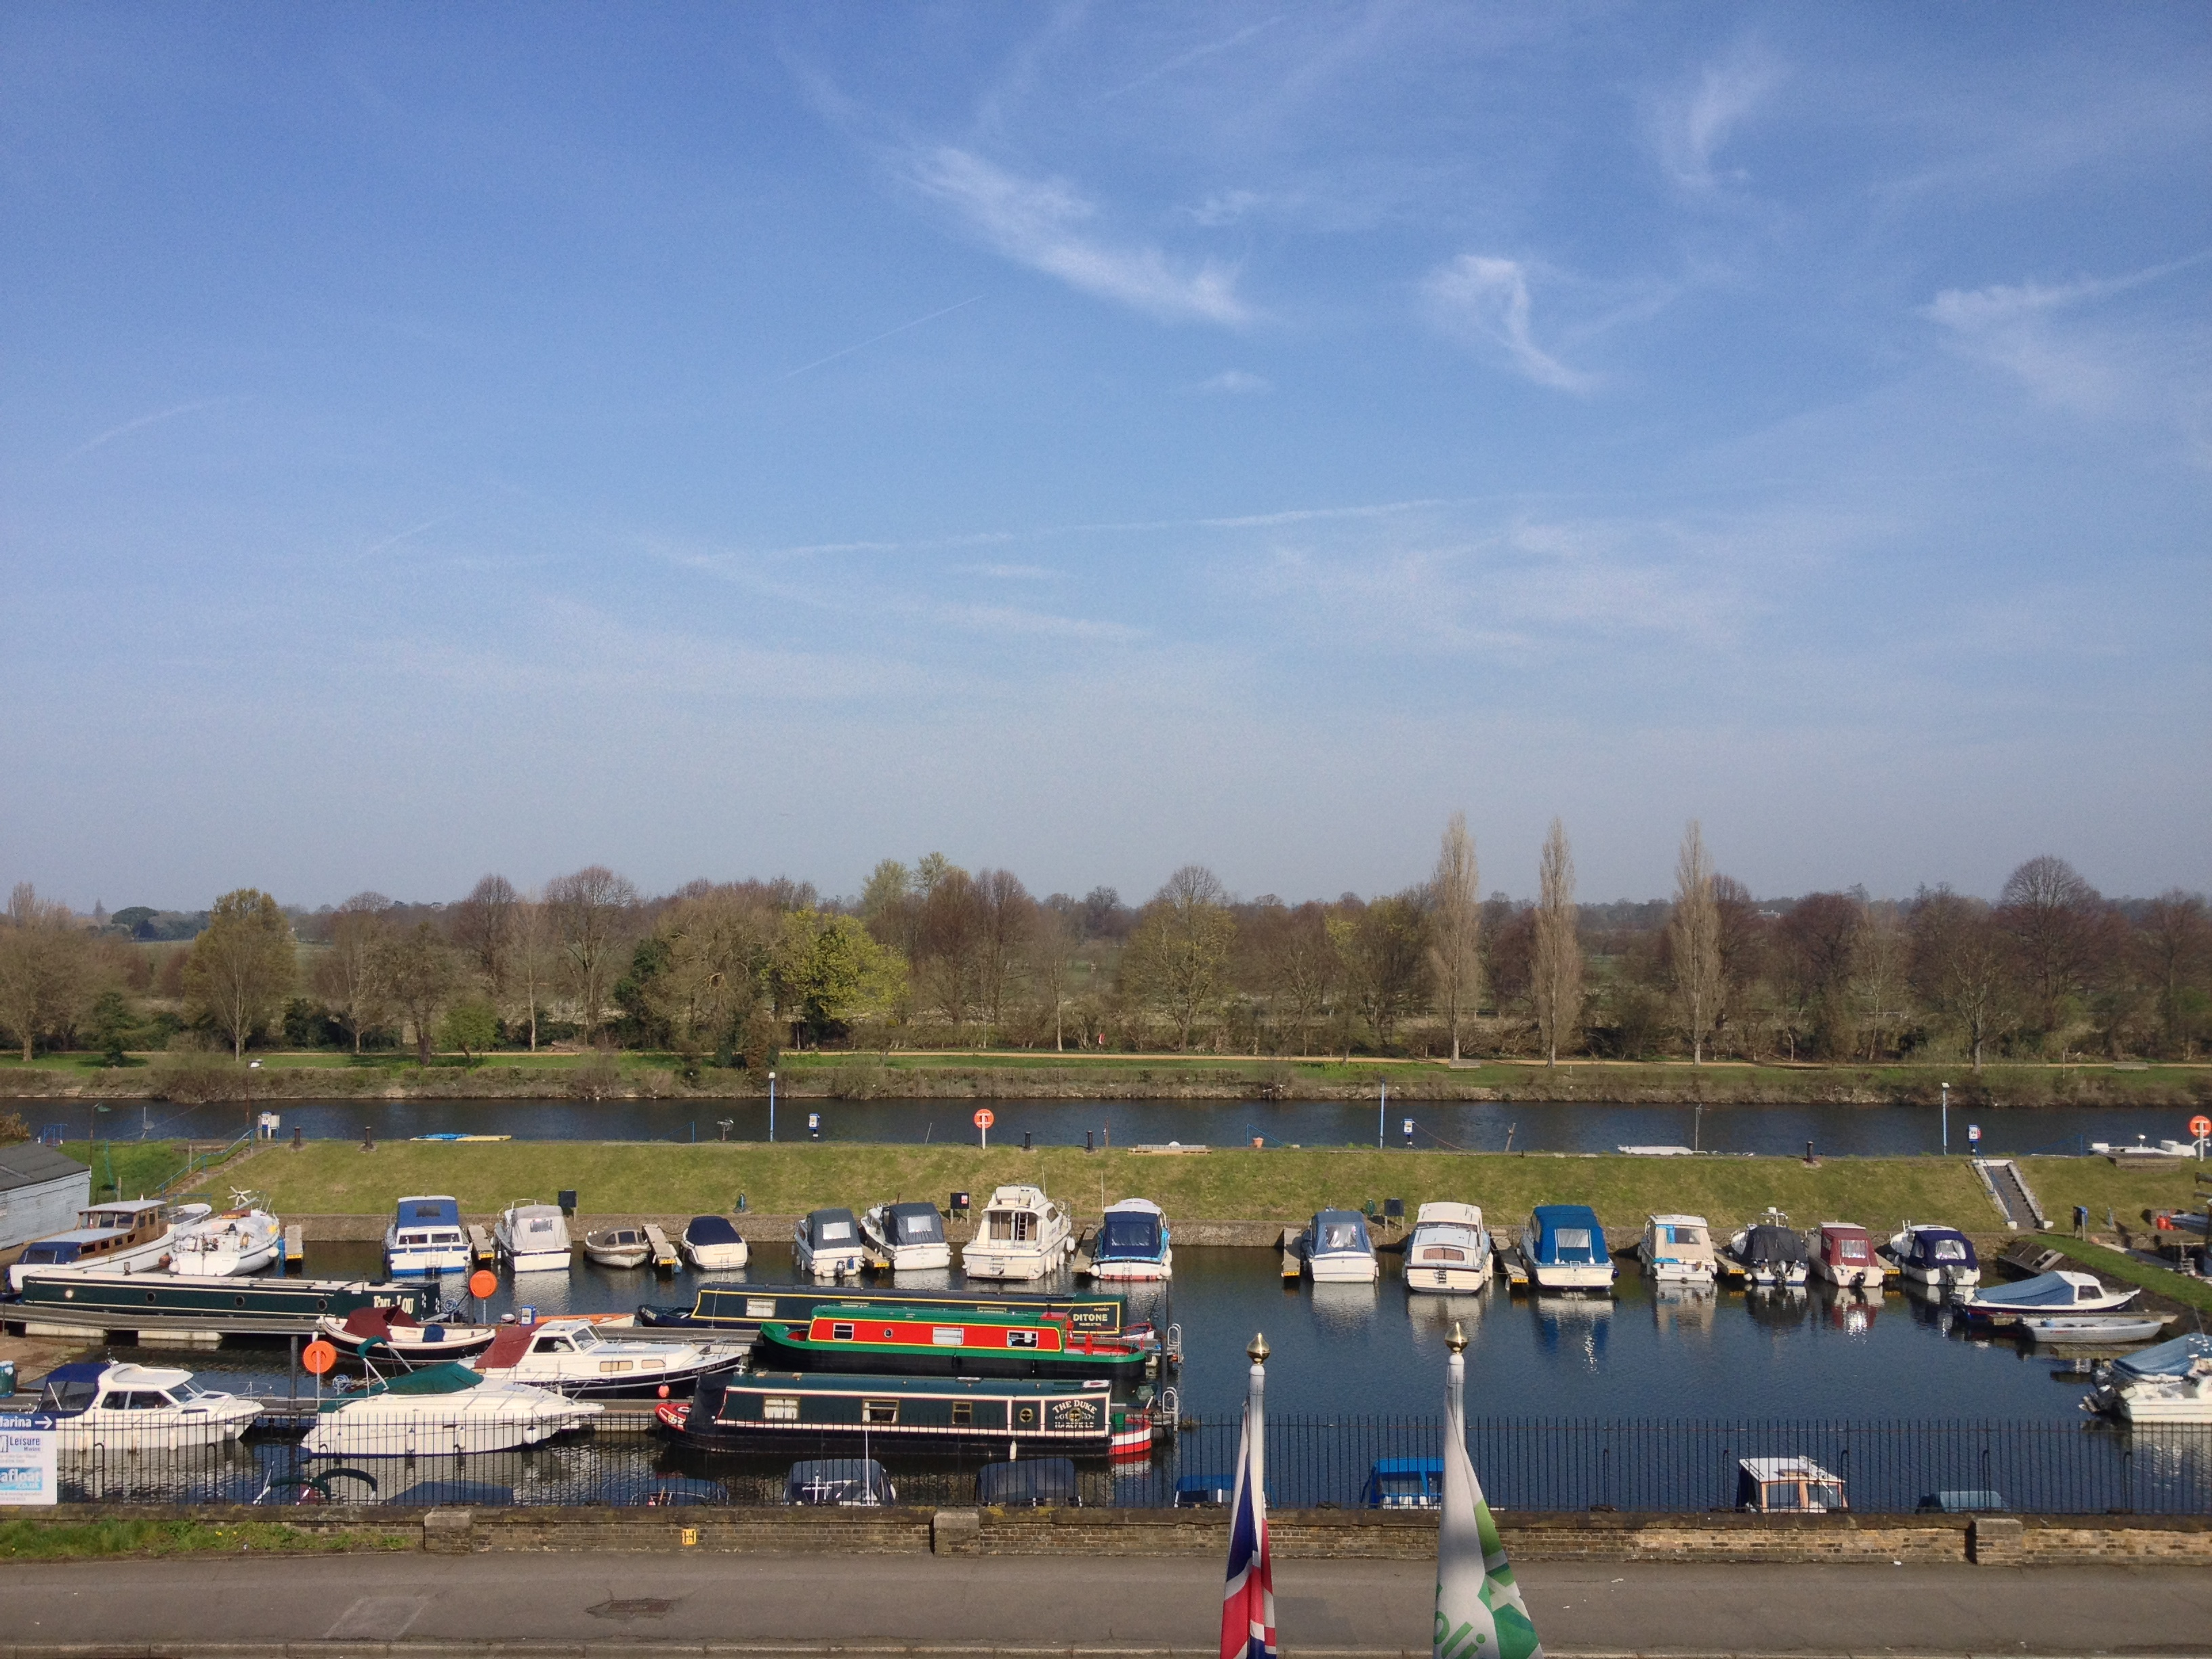 quality kingston upon thames and beautifully Photos of river thames, kingston upon thames - beautiful kingston upon thames england 18000 kingston google will keep in secret the number of search quality.